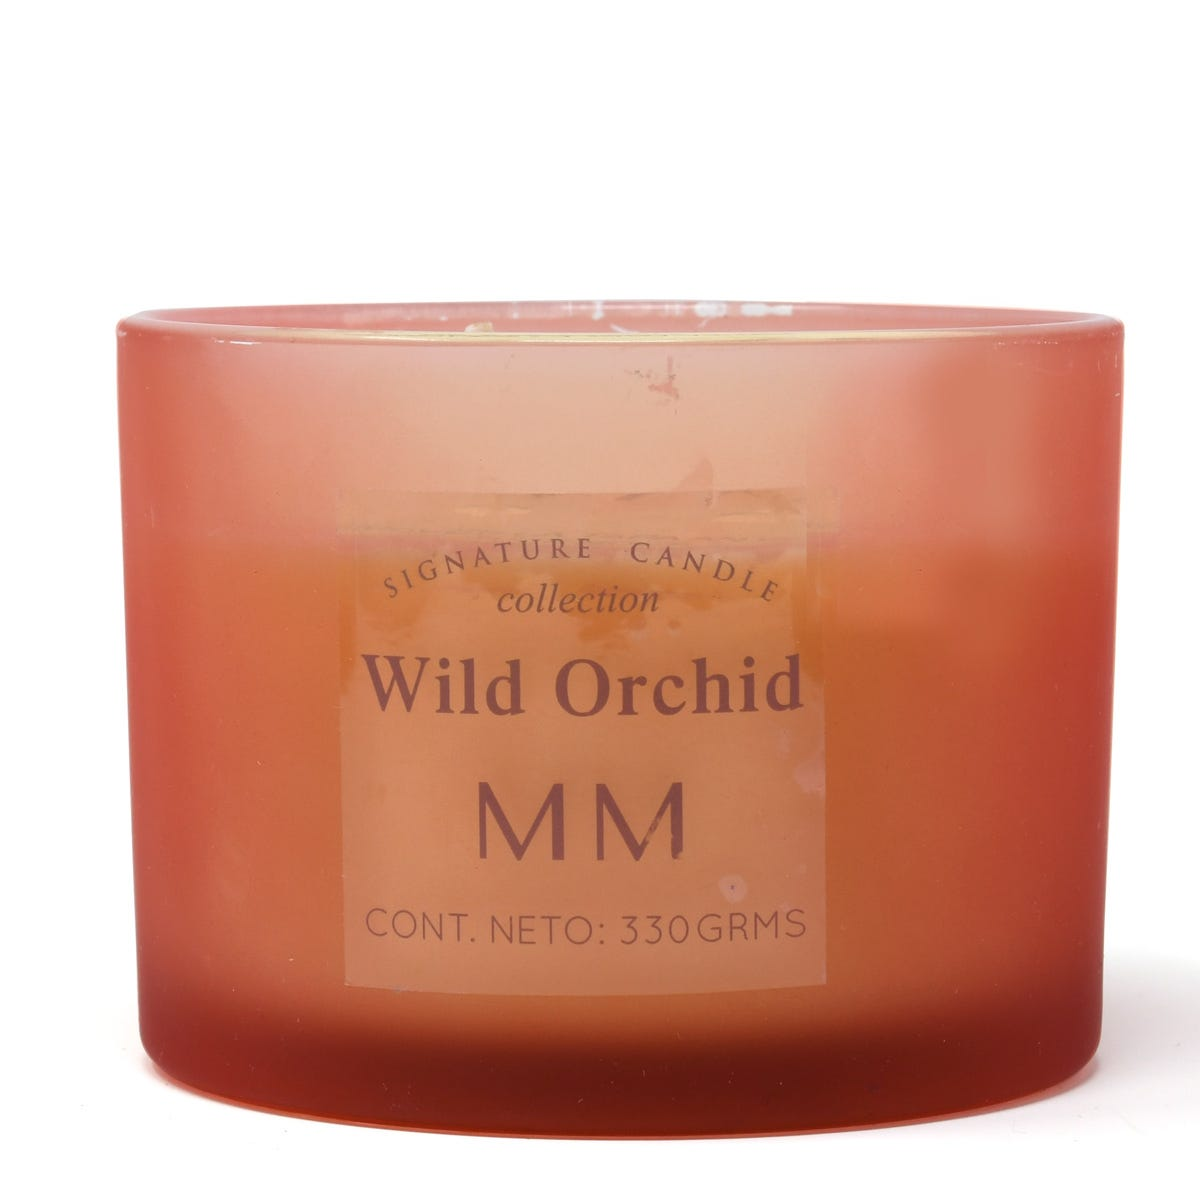 Vela aromática Colonial Candle® Signature Candle Wild Orchid, 330 g